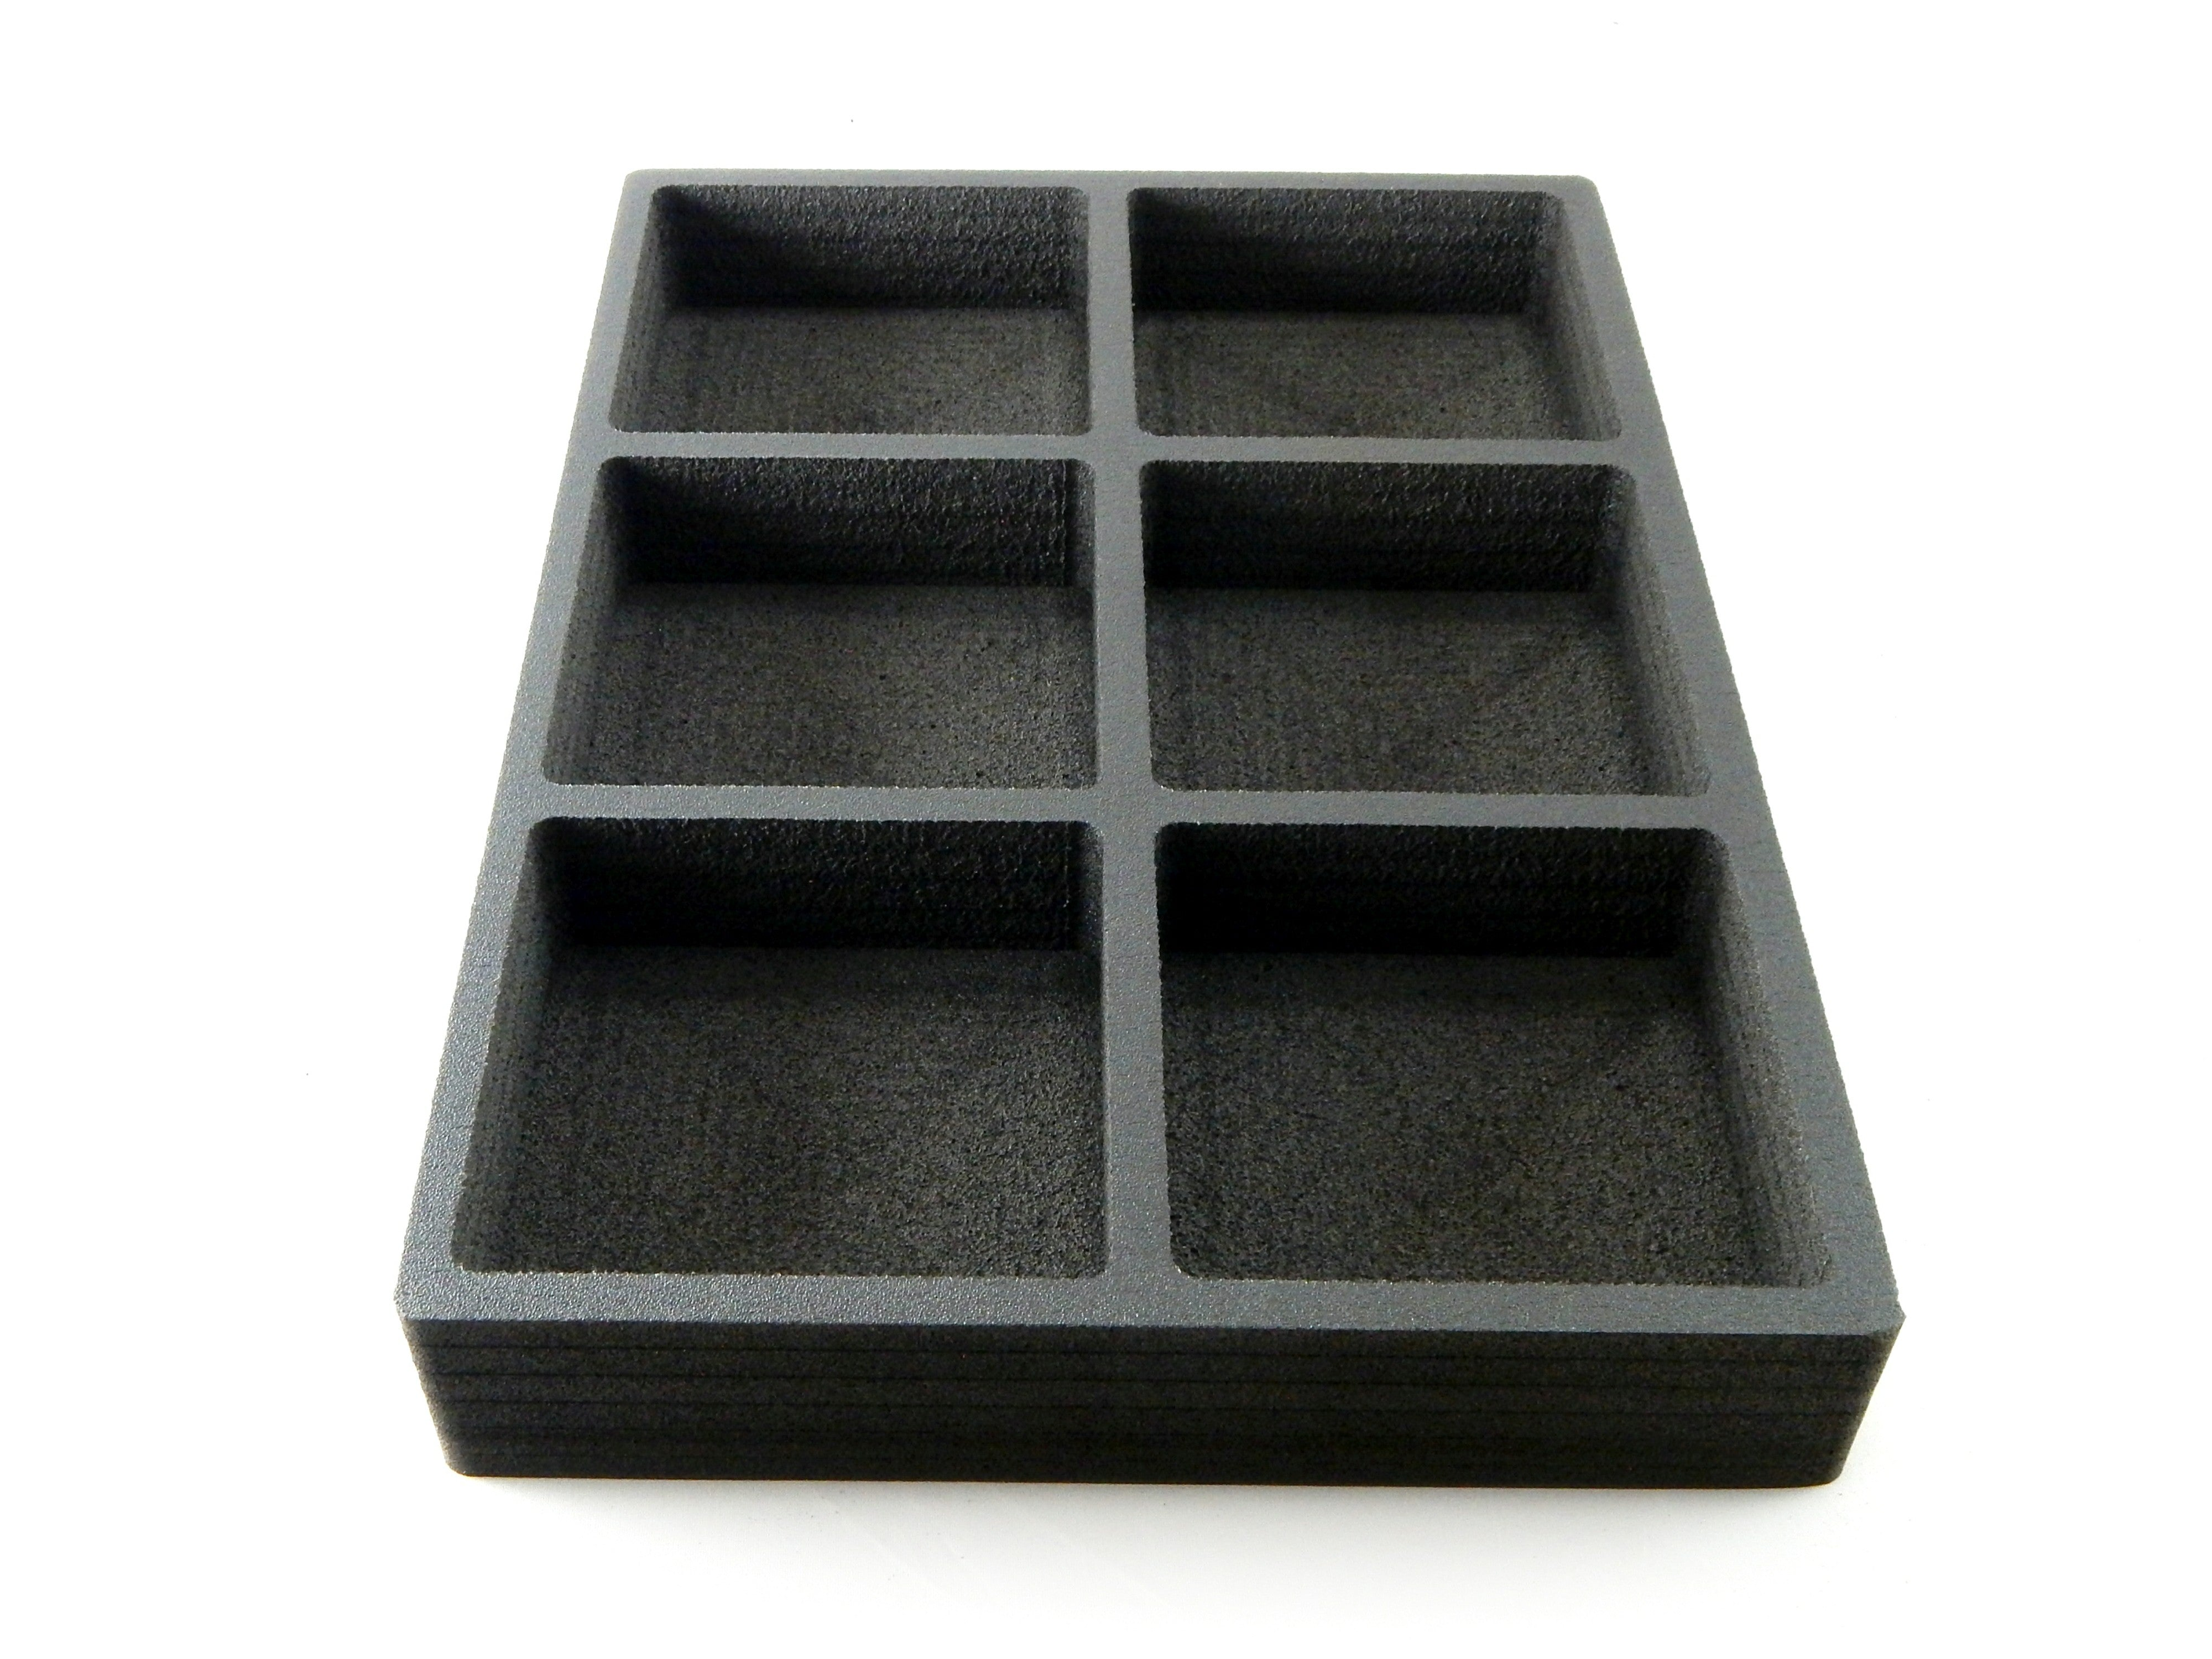 Polar Whale Sample Storage Tray Lab Organizer Holder Organization Stand Non-Slip Anti-Rattle Durable Black Foam 16 x 11 Inch 6 Compartments